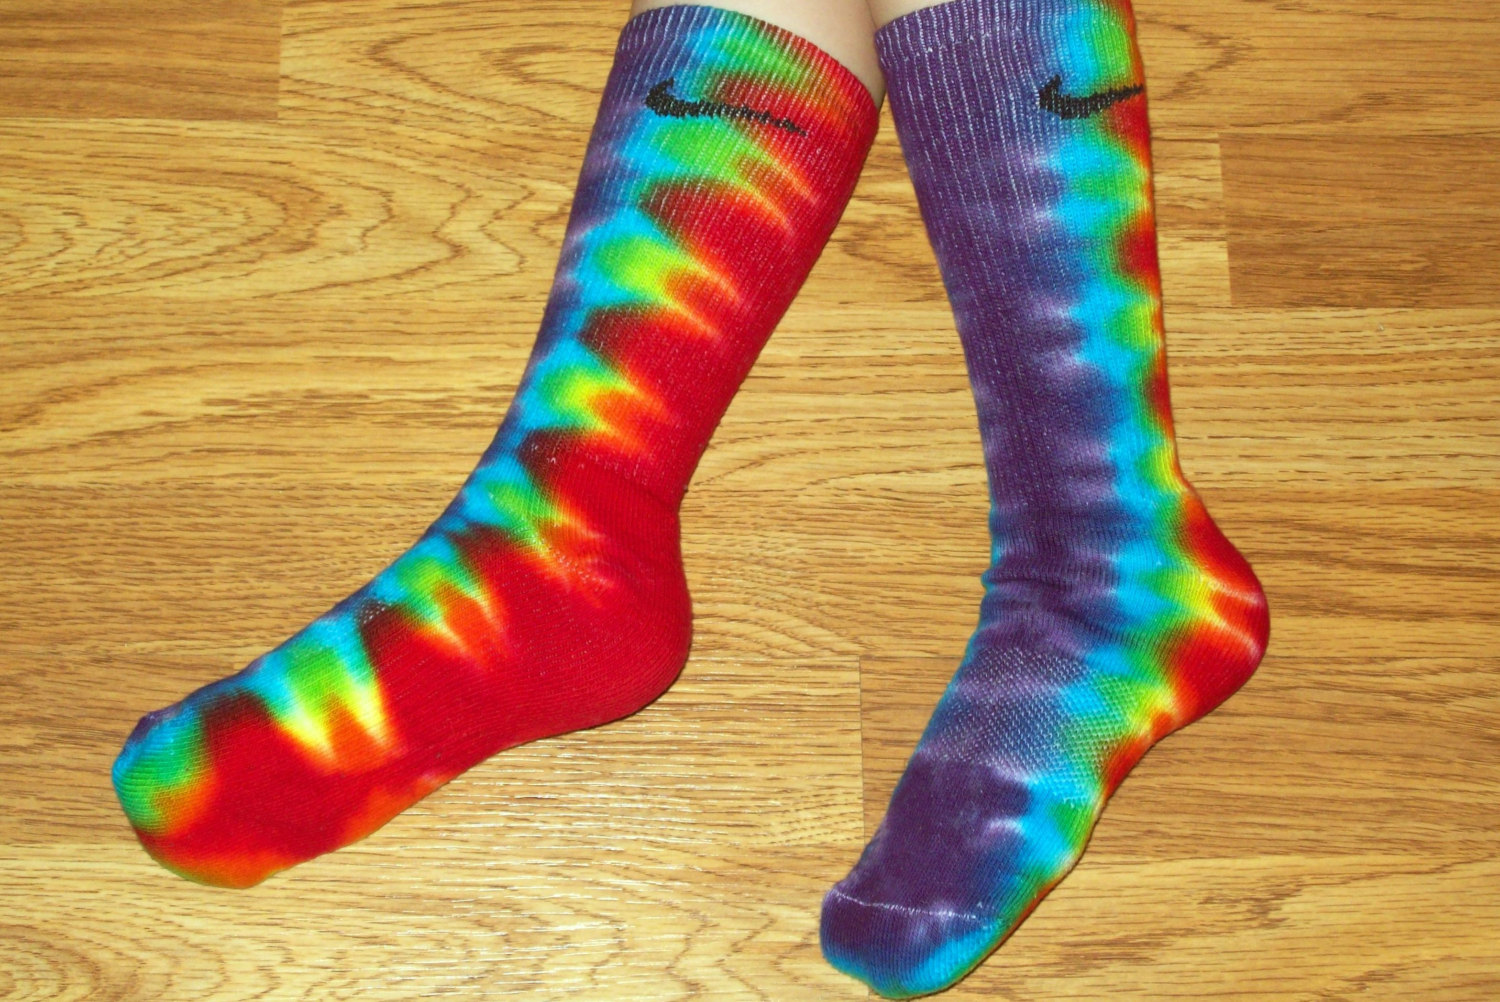 17 Colorful Tie Dye Socks The Funky Stitch